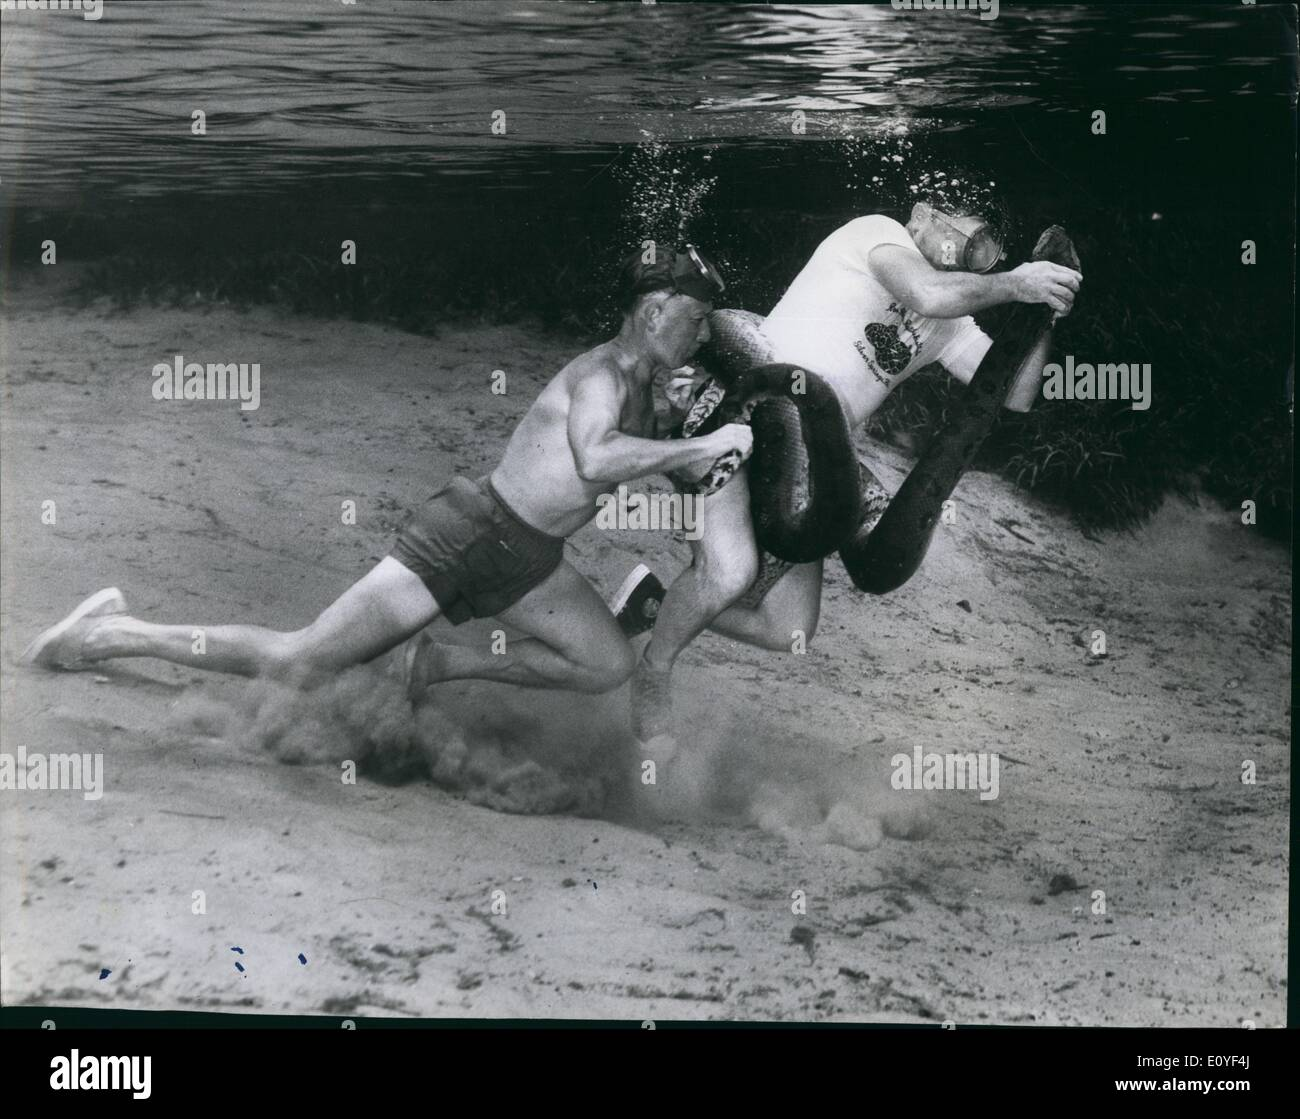 Jan. 1, 1970 - Man Versus Anaconda - Underwater. Most Fantastic Battle Of A Lifetime: Horror registered grimly on the faces of a small group of Spectators as Ross Allen -a 50-year-old American Naturalist - proceeded on the maddest stunt of his life.... wrestling with a killer-Anaconda - underwater. Never before in the history of mankind has such a fantastic challenge take place. Despite a flood of protest plunged into the river and barehanded tackled the gigantic serpent whose muscular power is known for its ability to crush all its victims to death - Stock Image